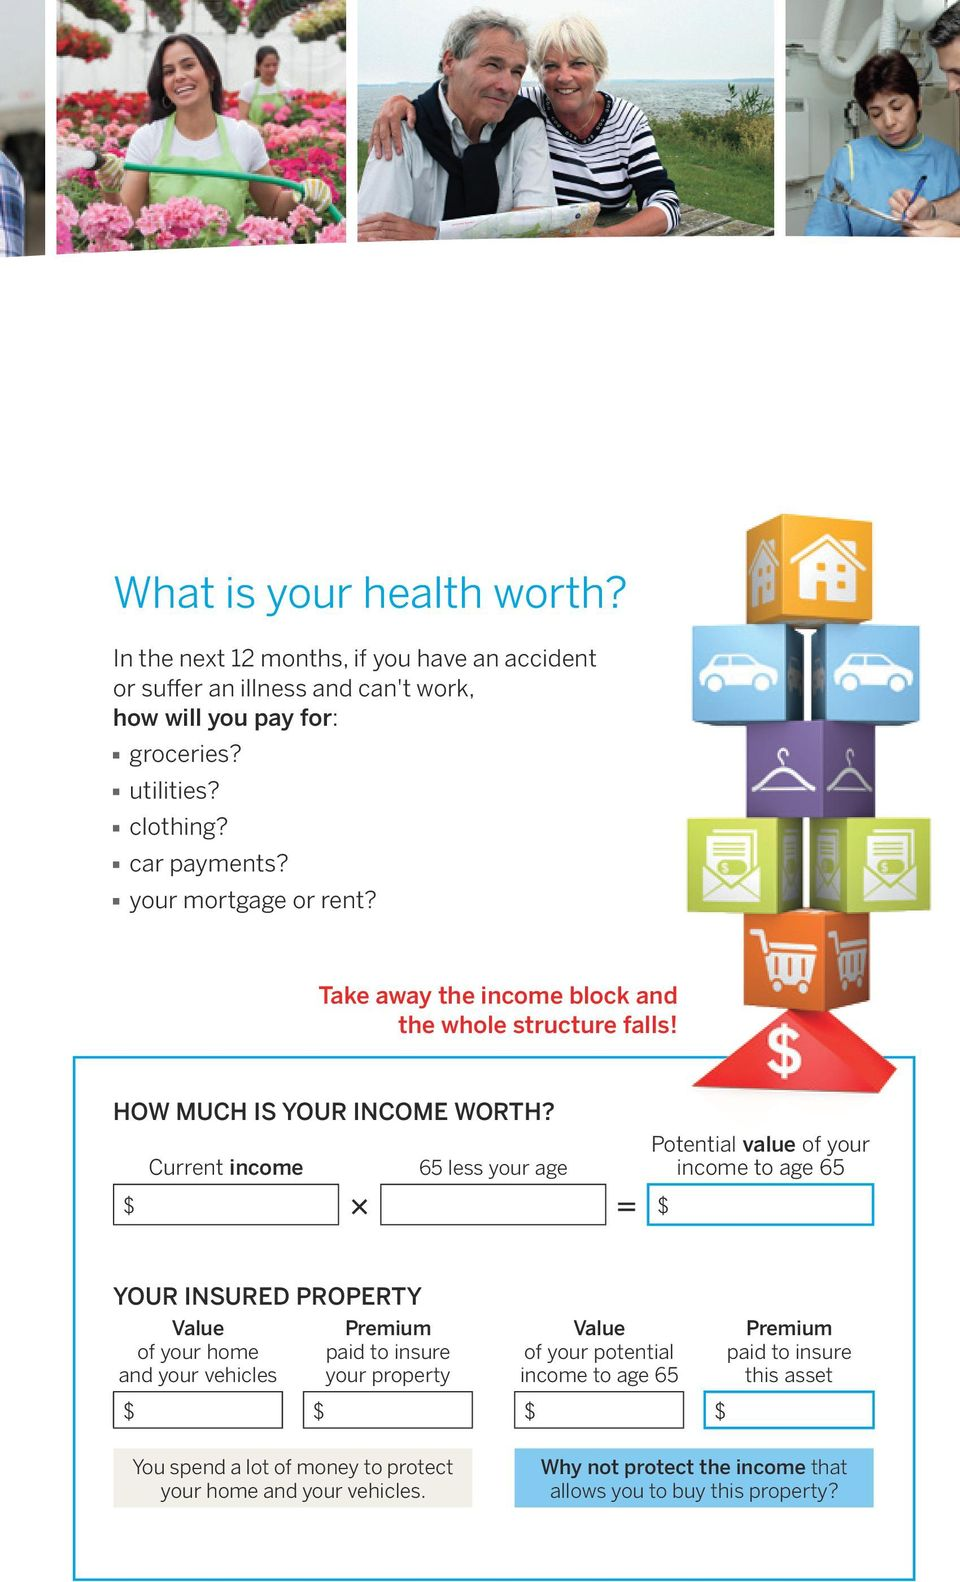 Current income 65 less your age Potential value of your income to age 65 $ 3 5 $ your insured property Value of your home and your vehicles premium paid to insure your